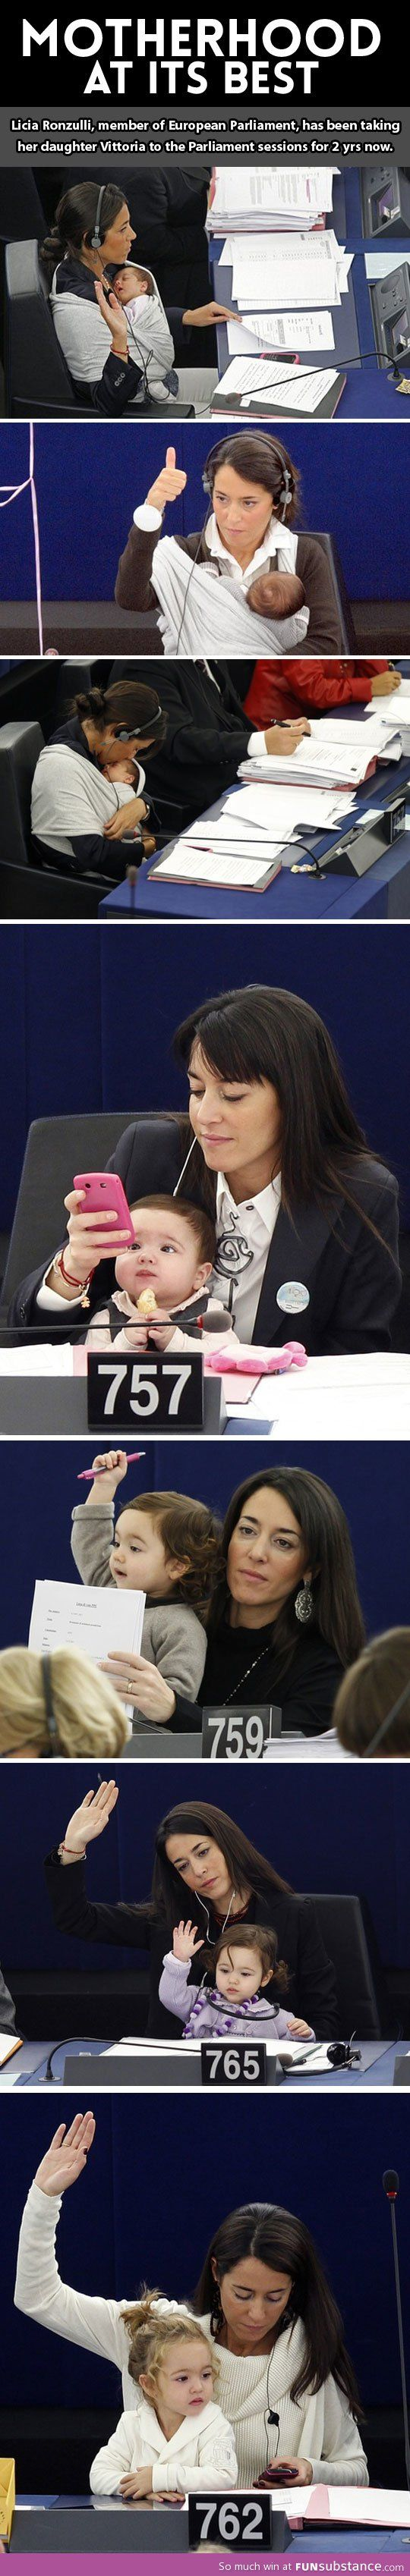 "In 2010 Licia Ronzulli, Italian MEP took her baby Vittoria to a vote in the European Parliament, keeping her carefully cradled in a sling and occasionally kissing her forehead. She was taking advantage of relatively relaxed rules that allow women to take their babies to work. Ronzulli brought Vittoria not as a political gesture but as a maternal one because she was still breastfeeding. She recognized that most women do not have this opportunity and that ""we should do something…about this.""…"